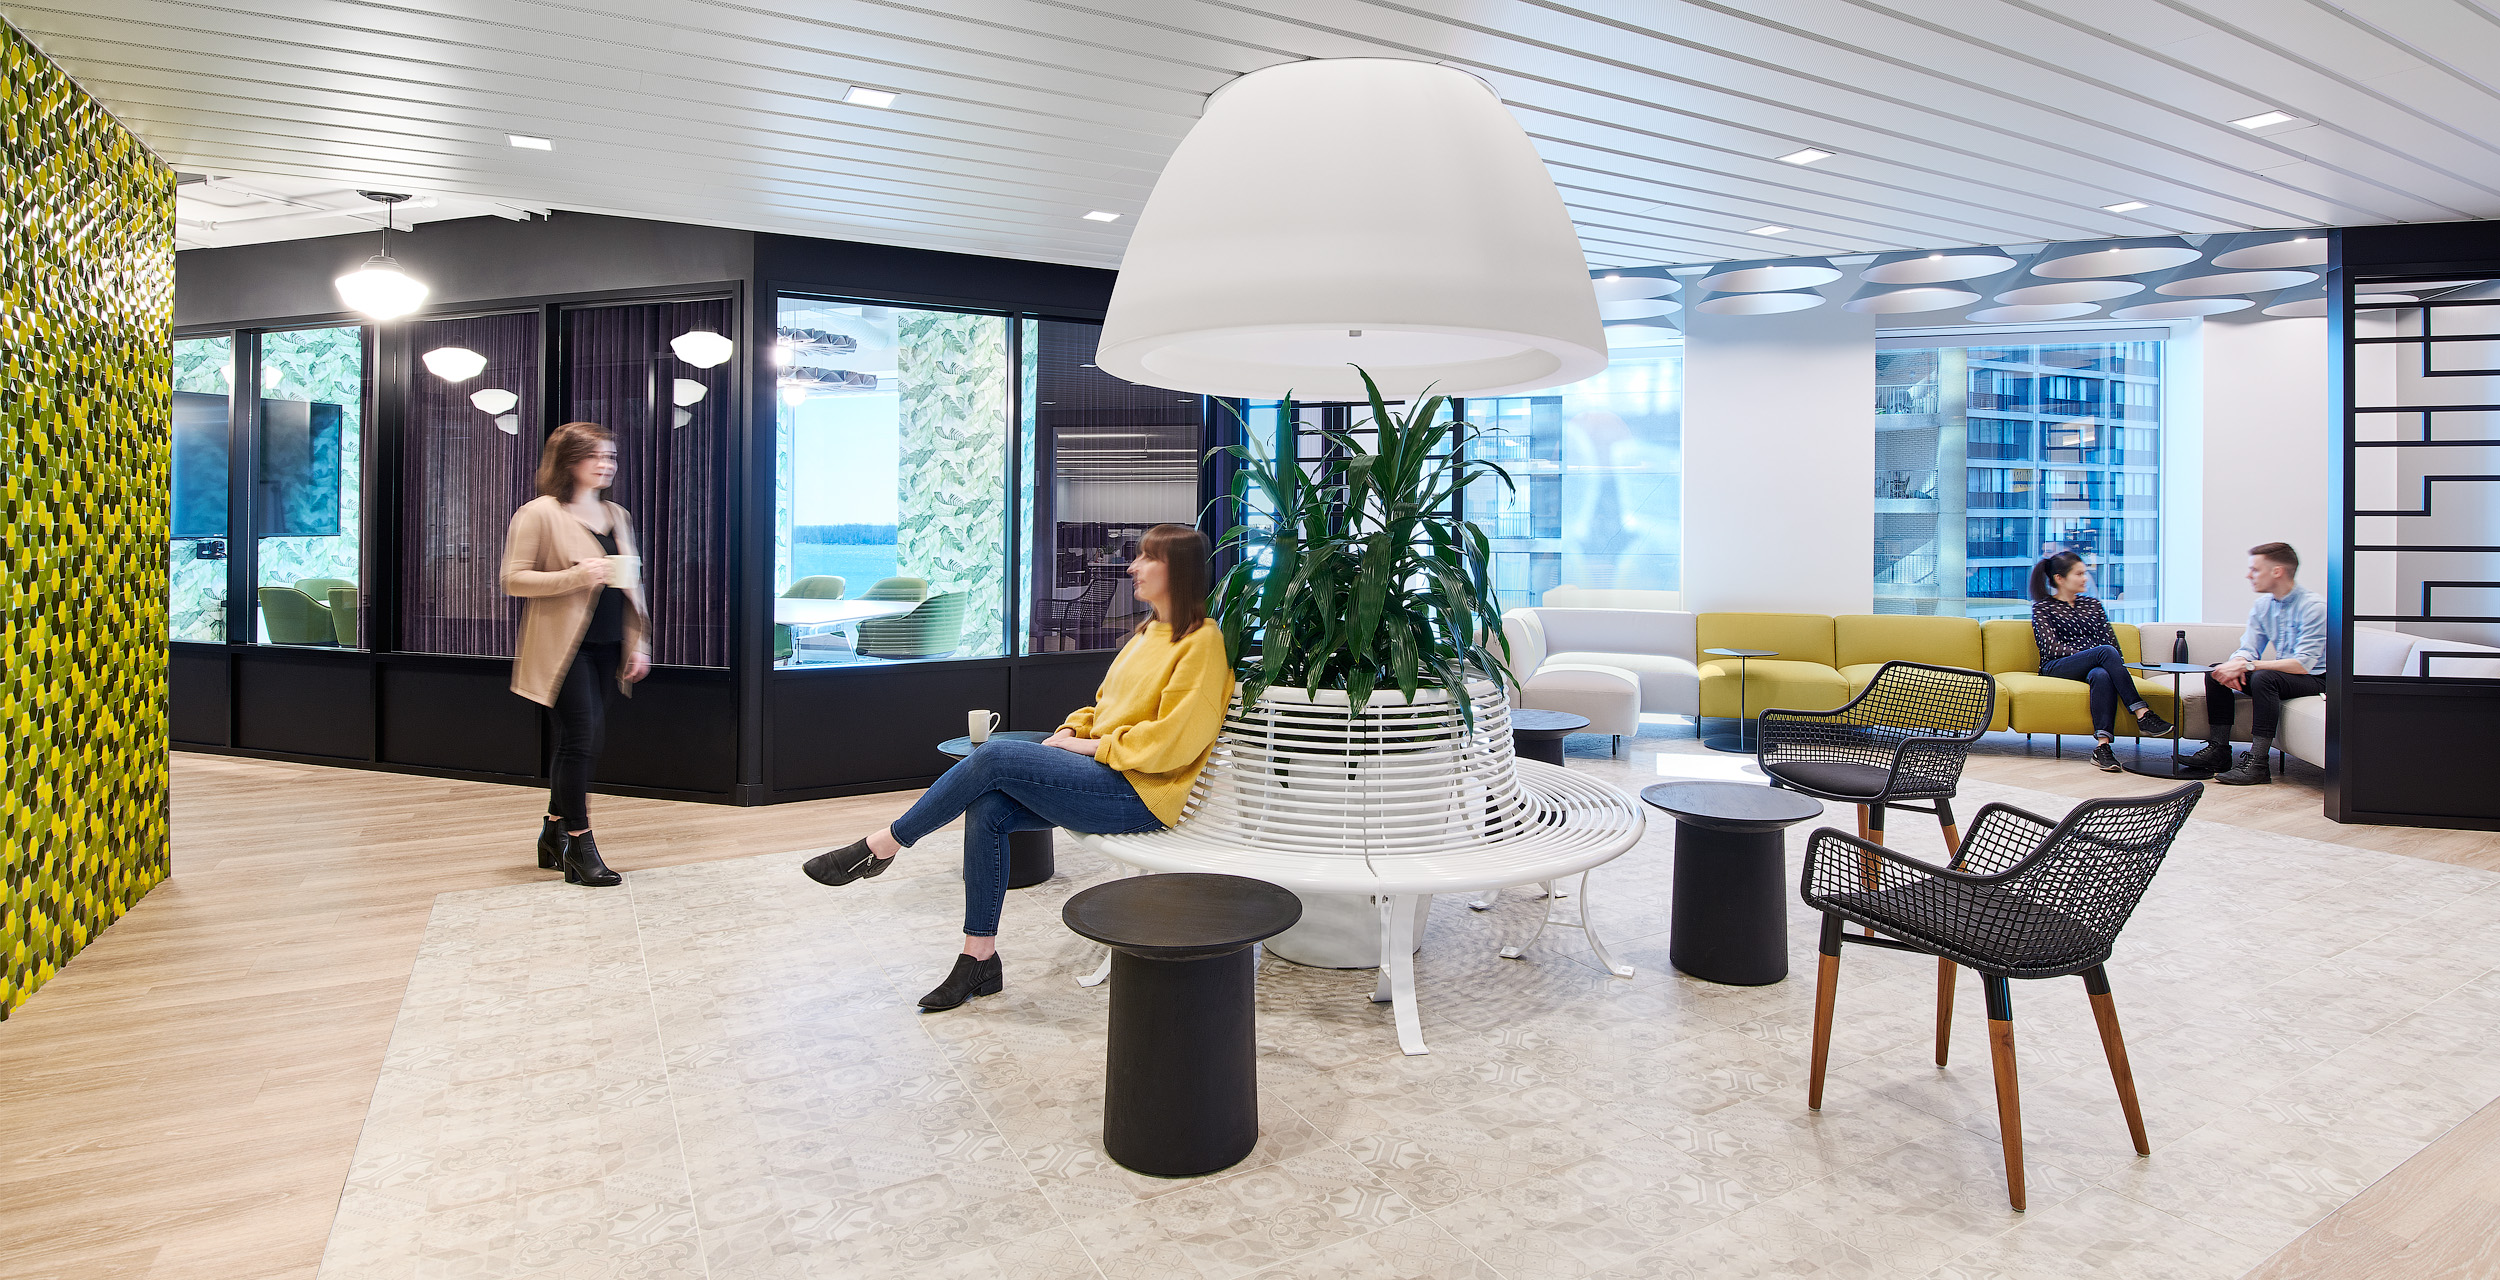 Mediabrands lobby with patterned foor, large white domed light in centre above green plant, and windows in background